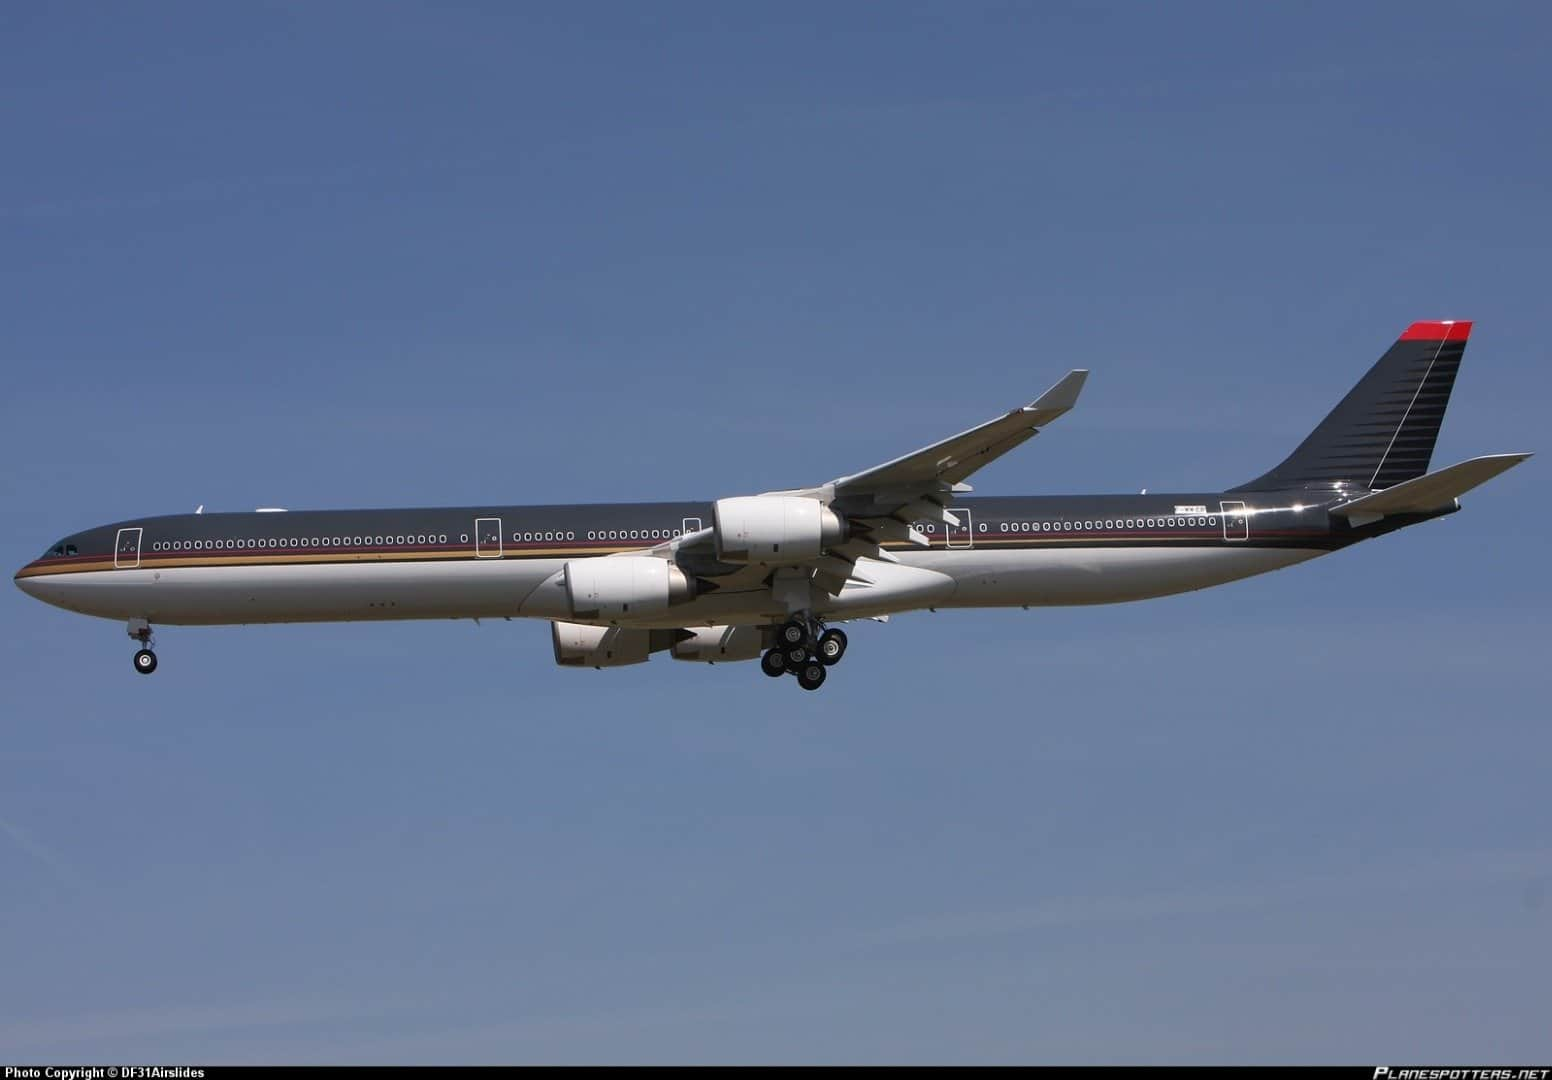 10 Of The Most Expensive Presidential Planes